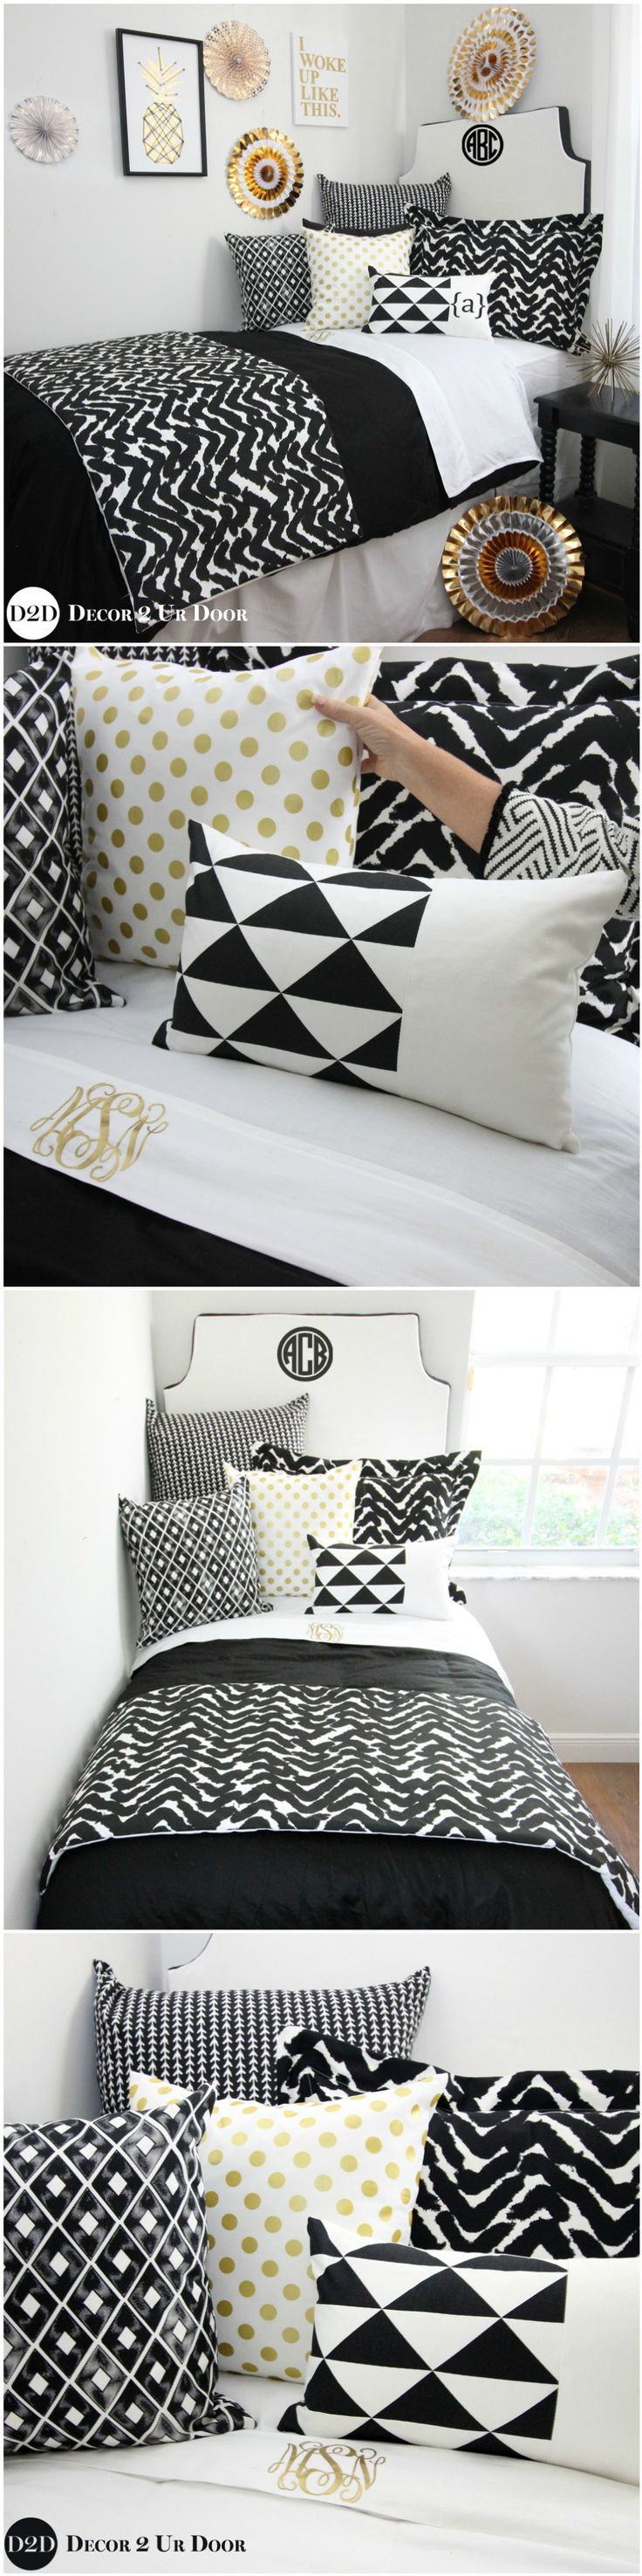 Black, white, and gold dorm room bedding and decor. Bold, black, and beautiful. This black and white (and gold!) dorm bedding set screams minimalist magnificence. These brand new fabrics feature geometric shapes, marker inspired prints, and textured furs. We're going back to basics here. Add a pop of gold in monograms + our gold polka dot pillow for a bit of glitz and glam. This black and white marker dorm bedding will be the absolute rage.